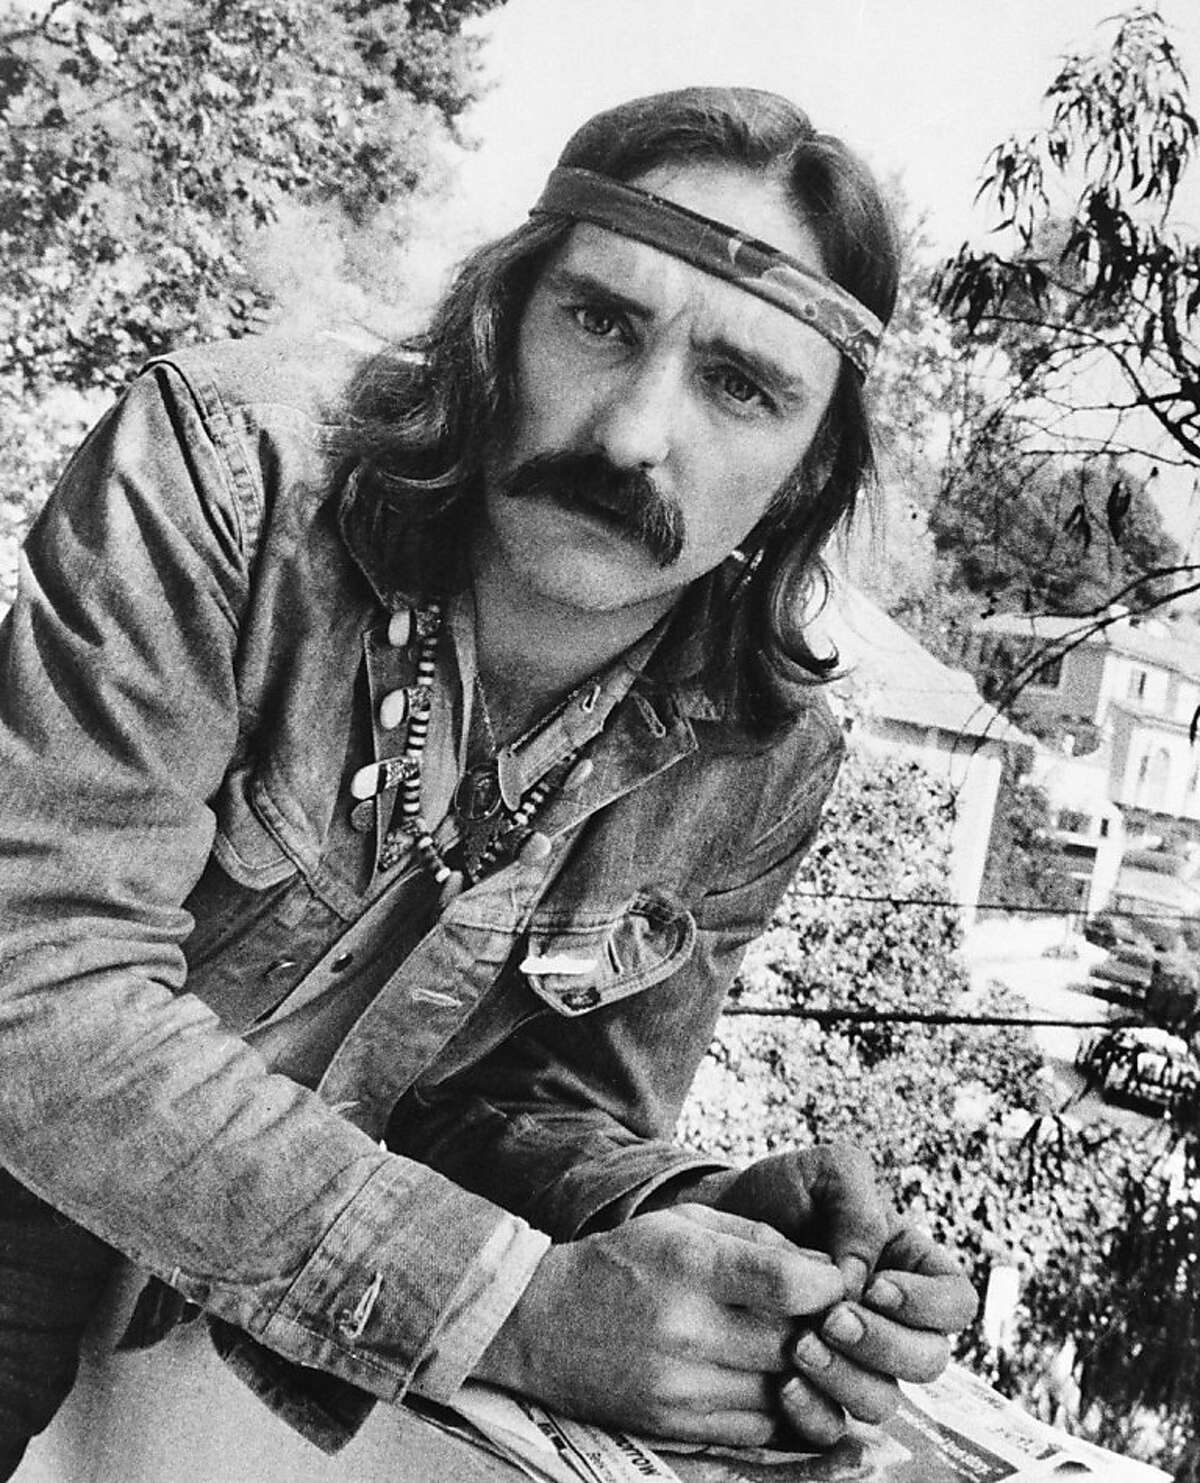 """FILE - In a Oct. 1971 file photo, director-actor Dennis Hopper poses in Hollywood, Ca. Hopper, the Hollywood actor-director whose memorable career included the 1969 smash """"Easy Rider,"""" died Saturday, May 29, 2010 at his Venice, Calif. home. He was 74. (AP Photo, File) Ran on: 05-30-2010 Two years after Easy Rider, Mr. Hopper looked as if he was still on the set of his best-known film."""